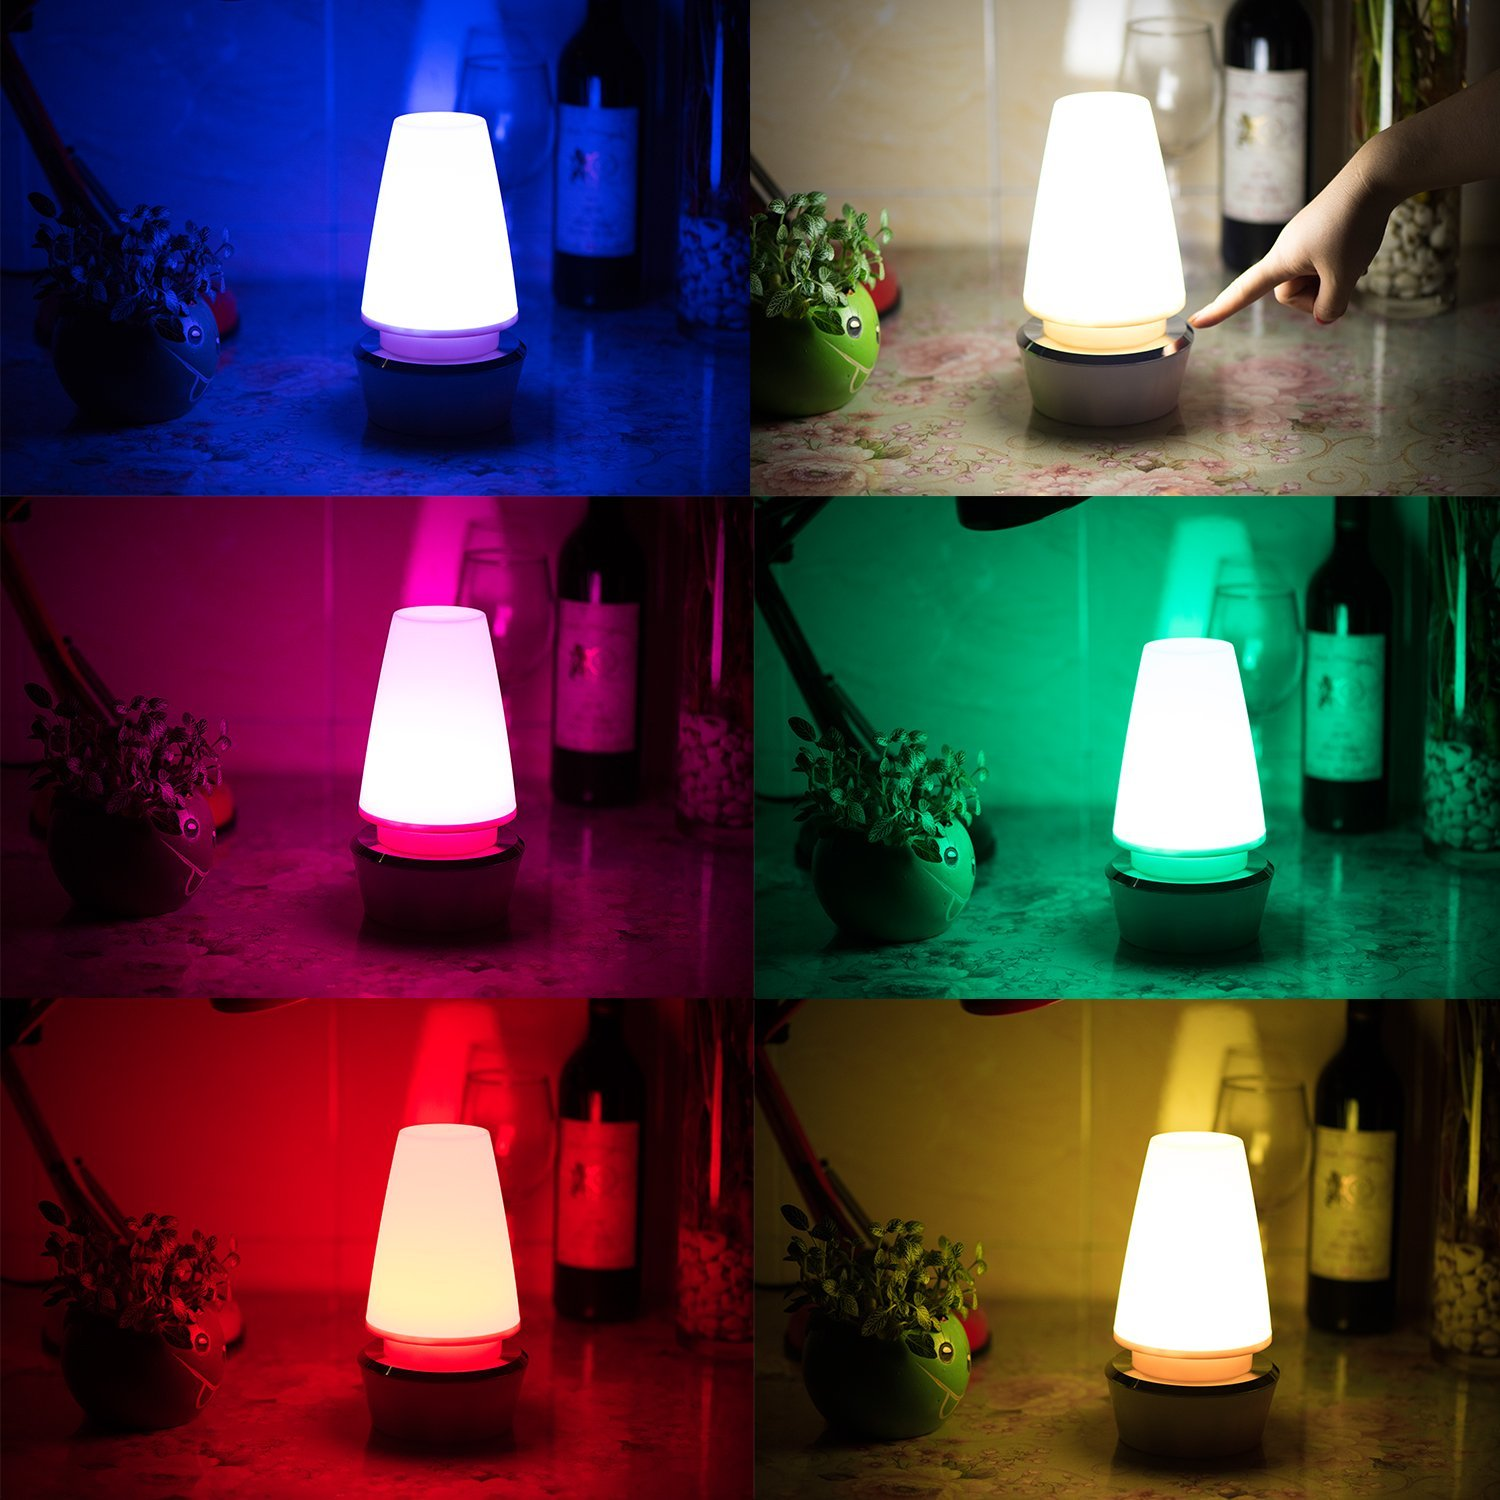 Get Quotations Nursery Lamp Elec3 Night Light Bedroom Atmosphere Bedside Table 360 Degrees Touch